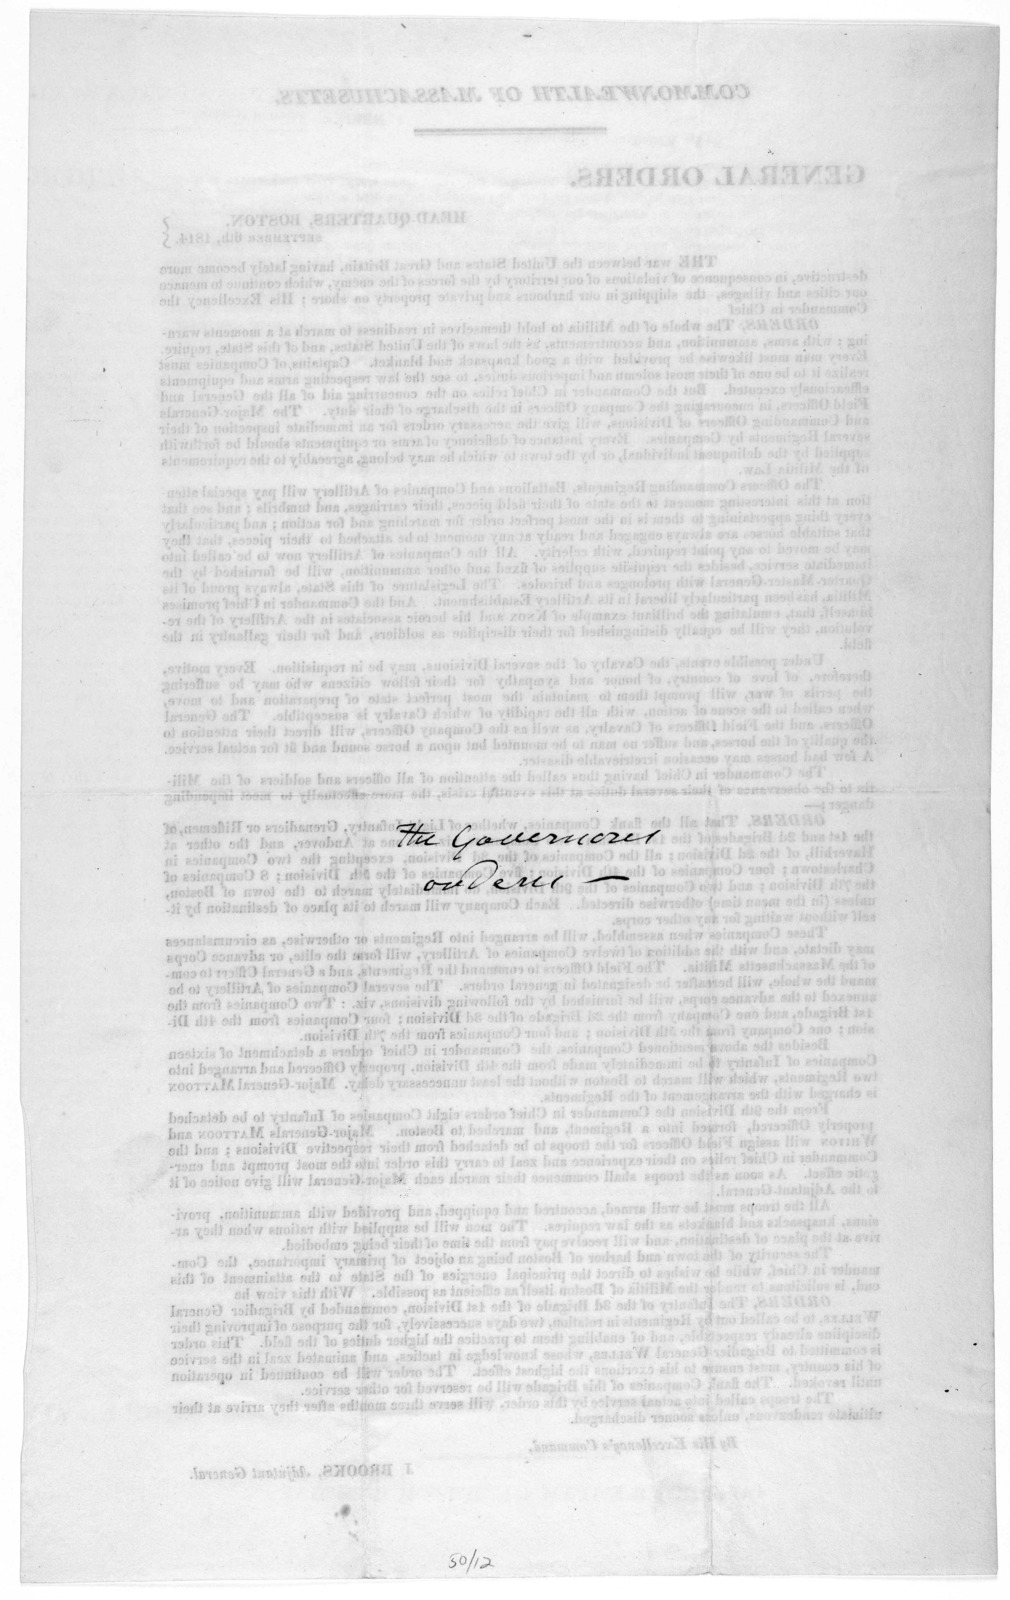 Commonwealth of Massachusetts. General orders. Head-quarters, Boston September 6th, 1814 ... By His Excellency's command. J. Brooks. Adjutant General [Boston 1814].